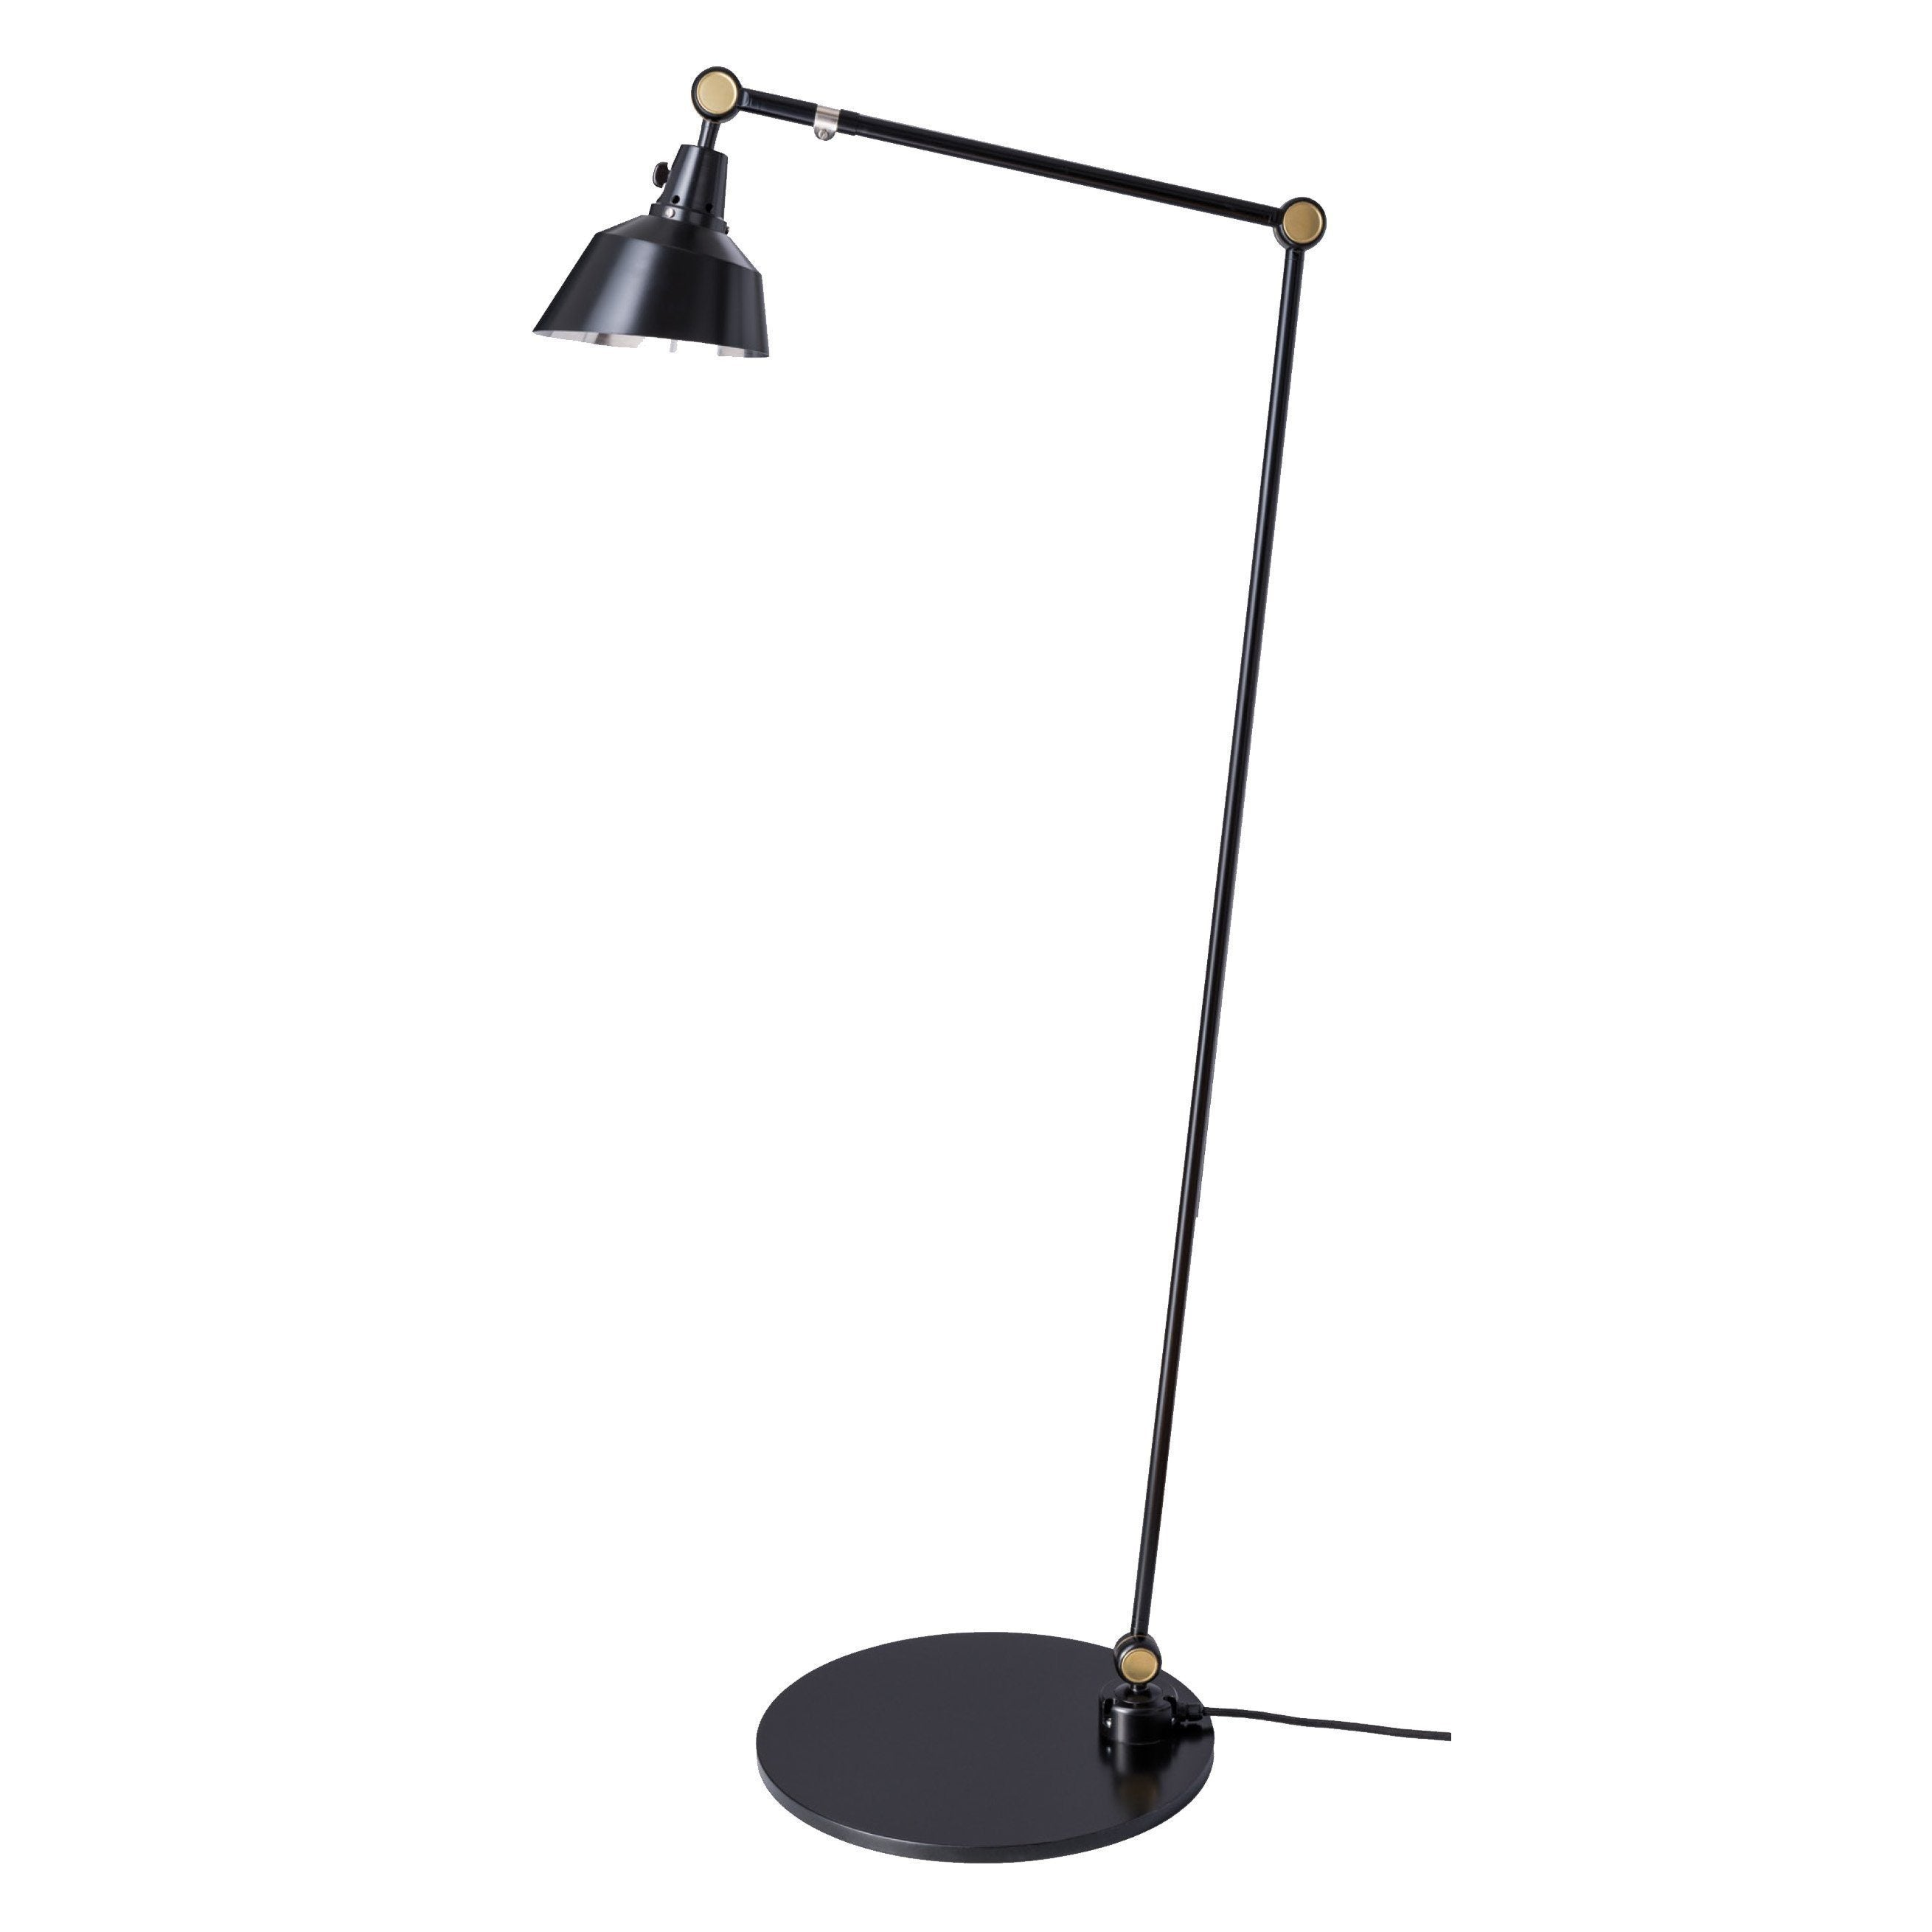 "Midgard Modular 556 Floor Lamp Black 1st arm 63"" - 2nd arm 15.75"""